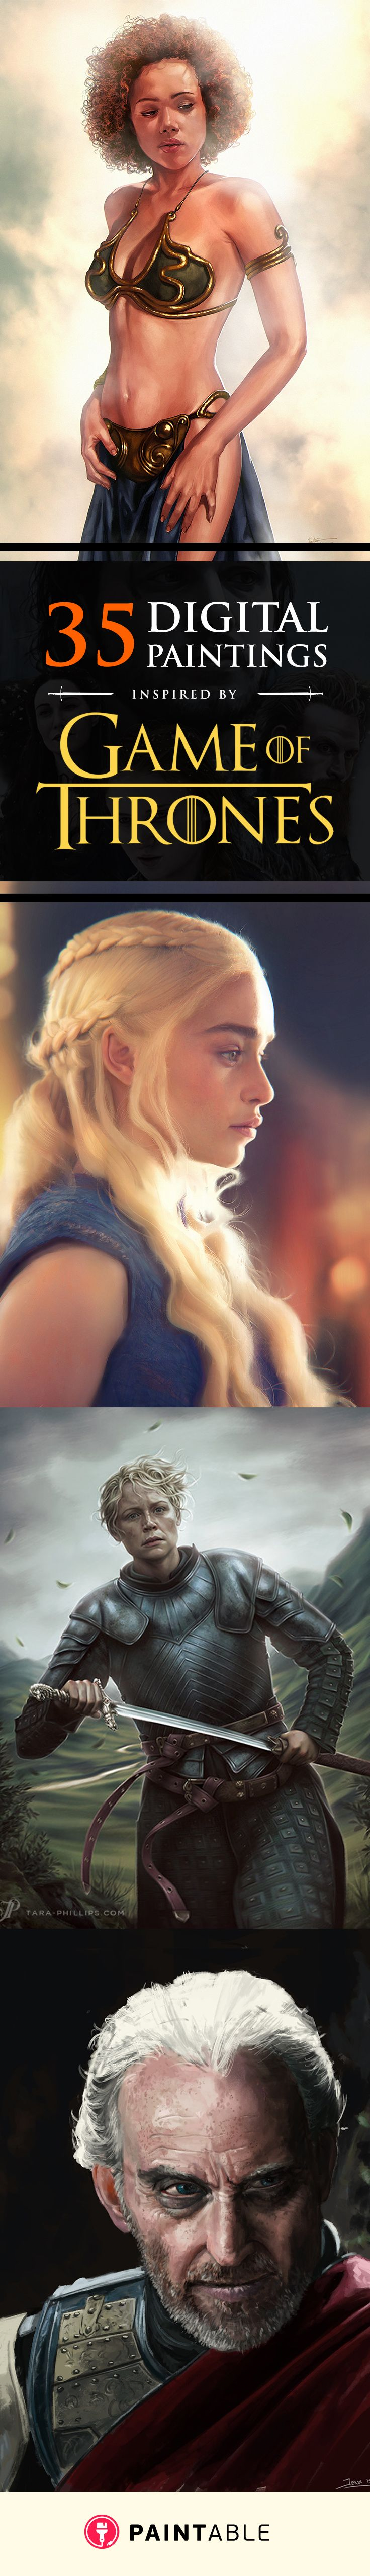 35 Digital Paintings Inspired by Game of Thrones @ www.paintable.cc // Paintable